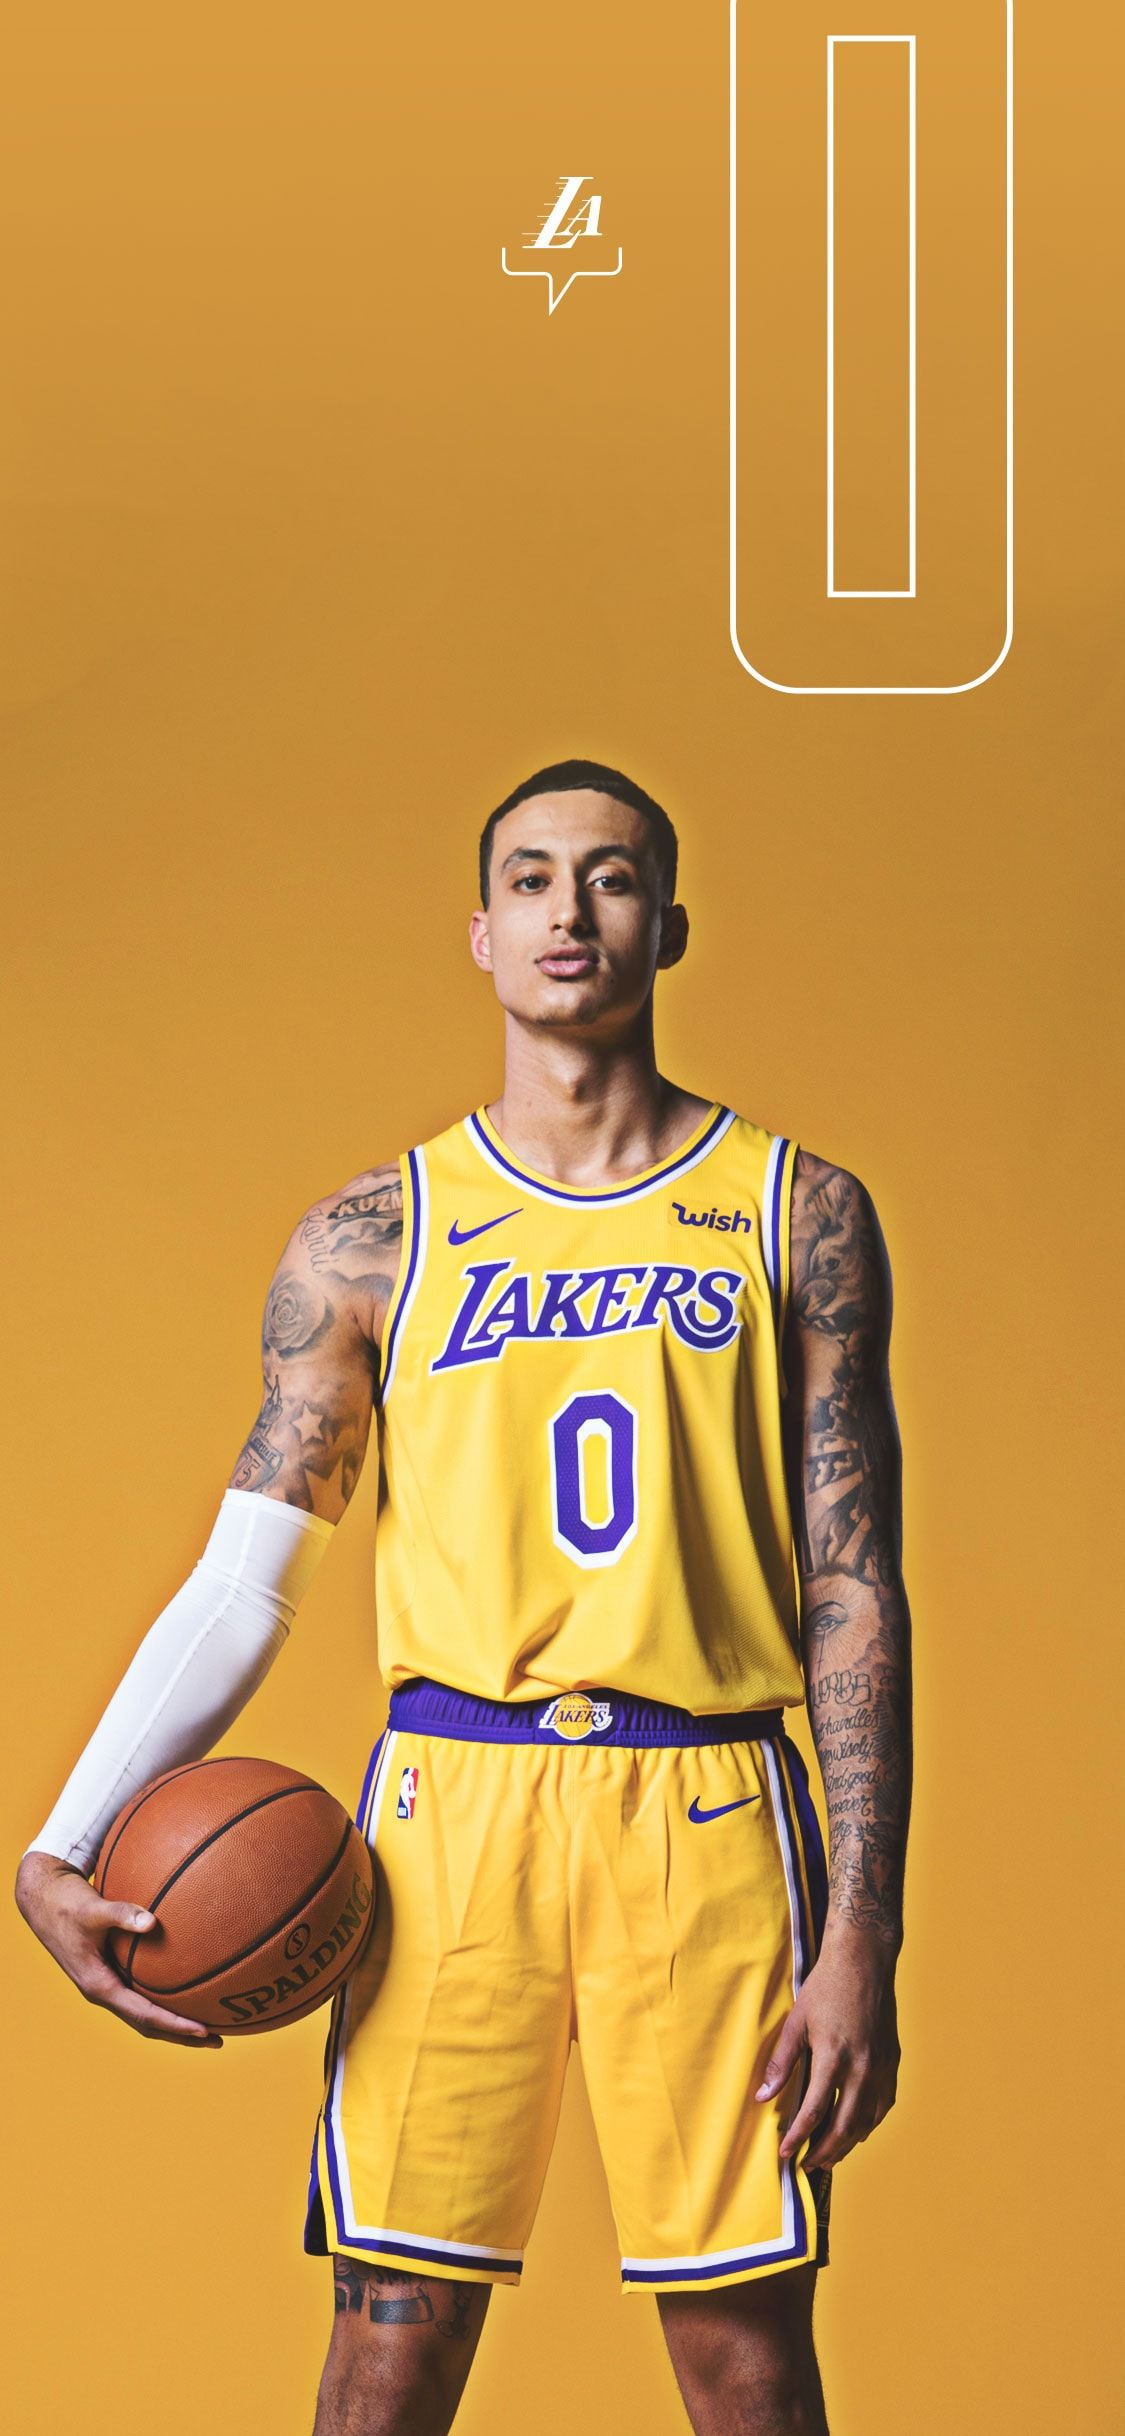 Lakers Wallpapers And Infographics Los Angeles Lakers In 2020 Lakers Wallpaper Kyle Kuzma Los Angeles Lakers